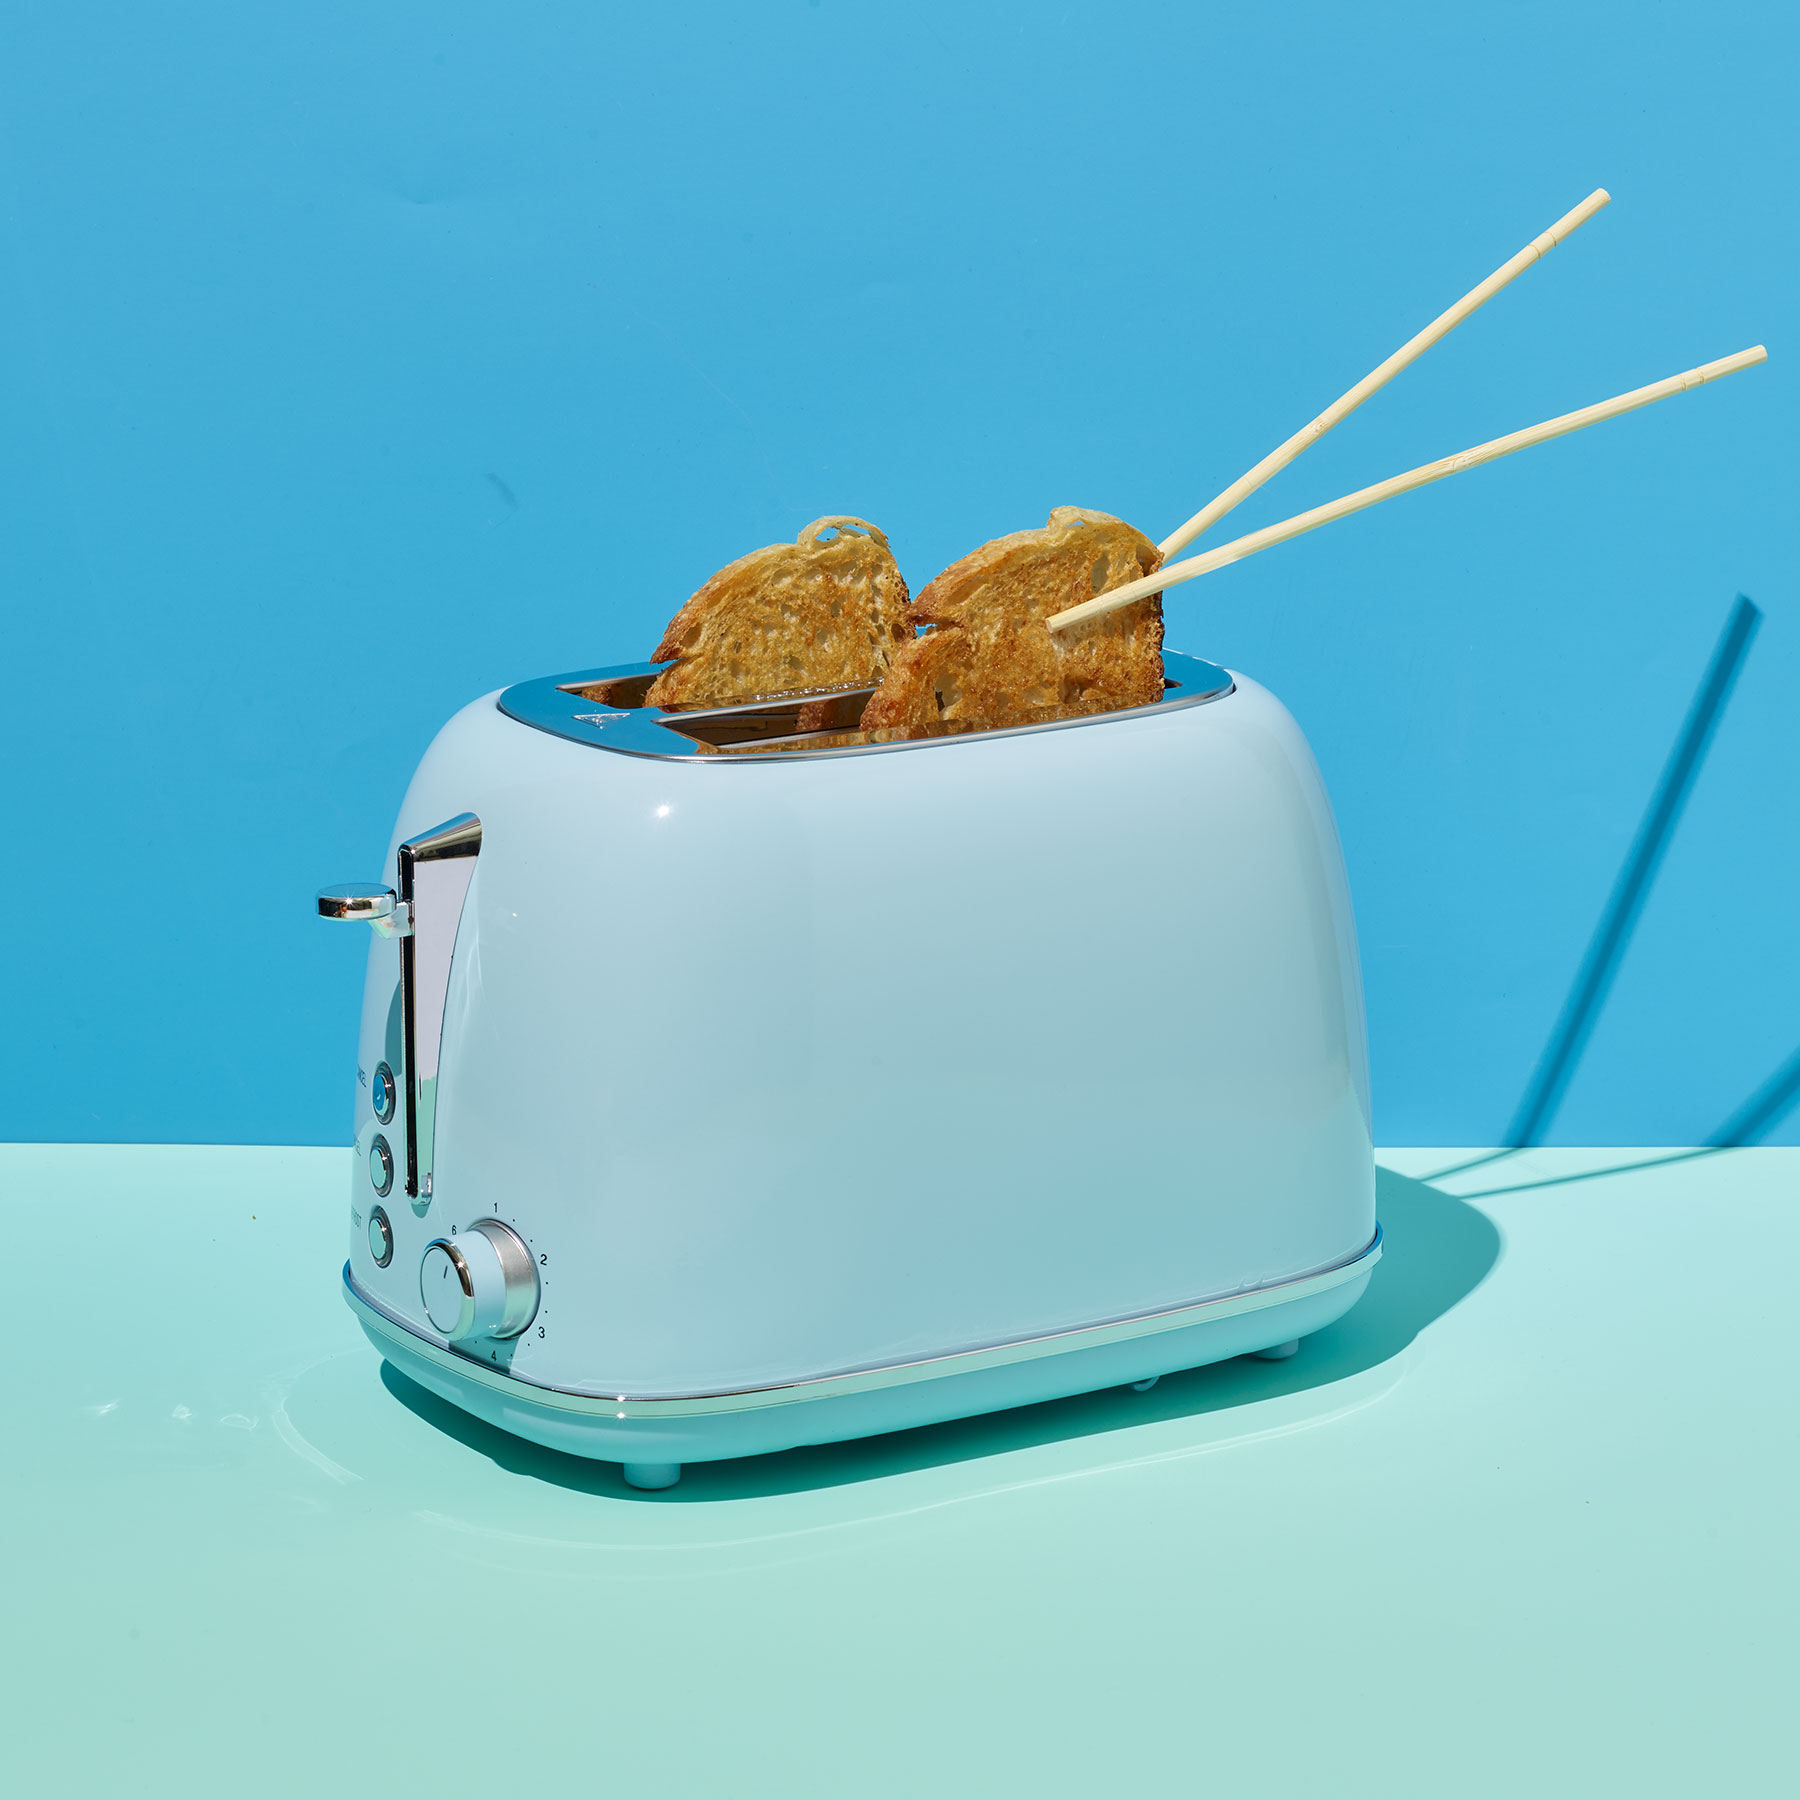 Cool Things to Do With Chopsticks: Toaster Tongs